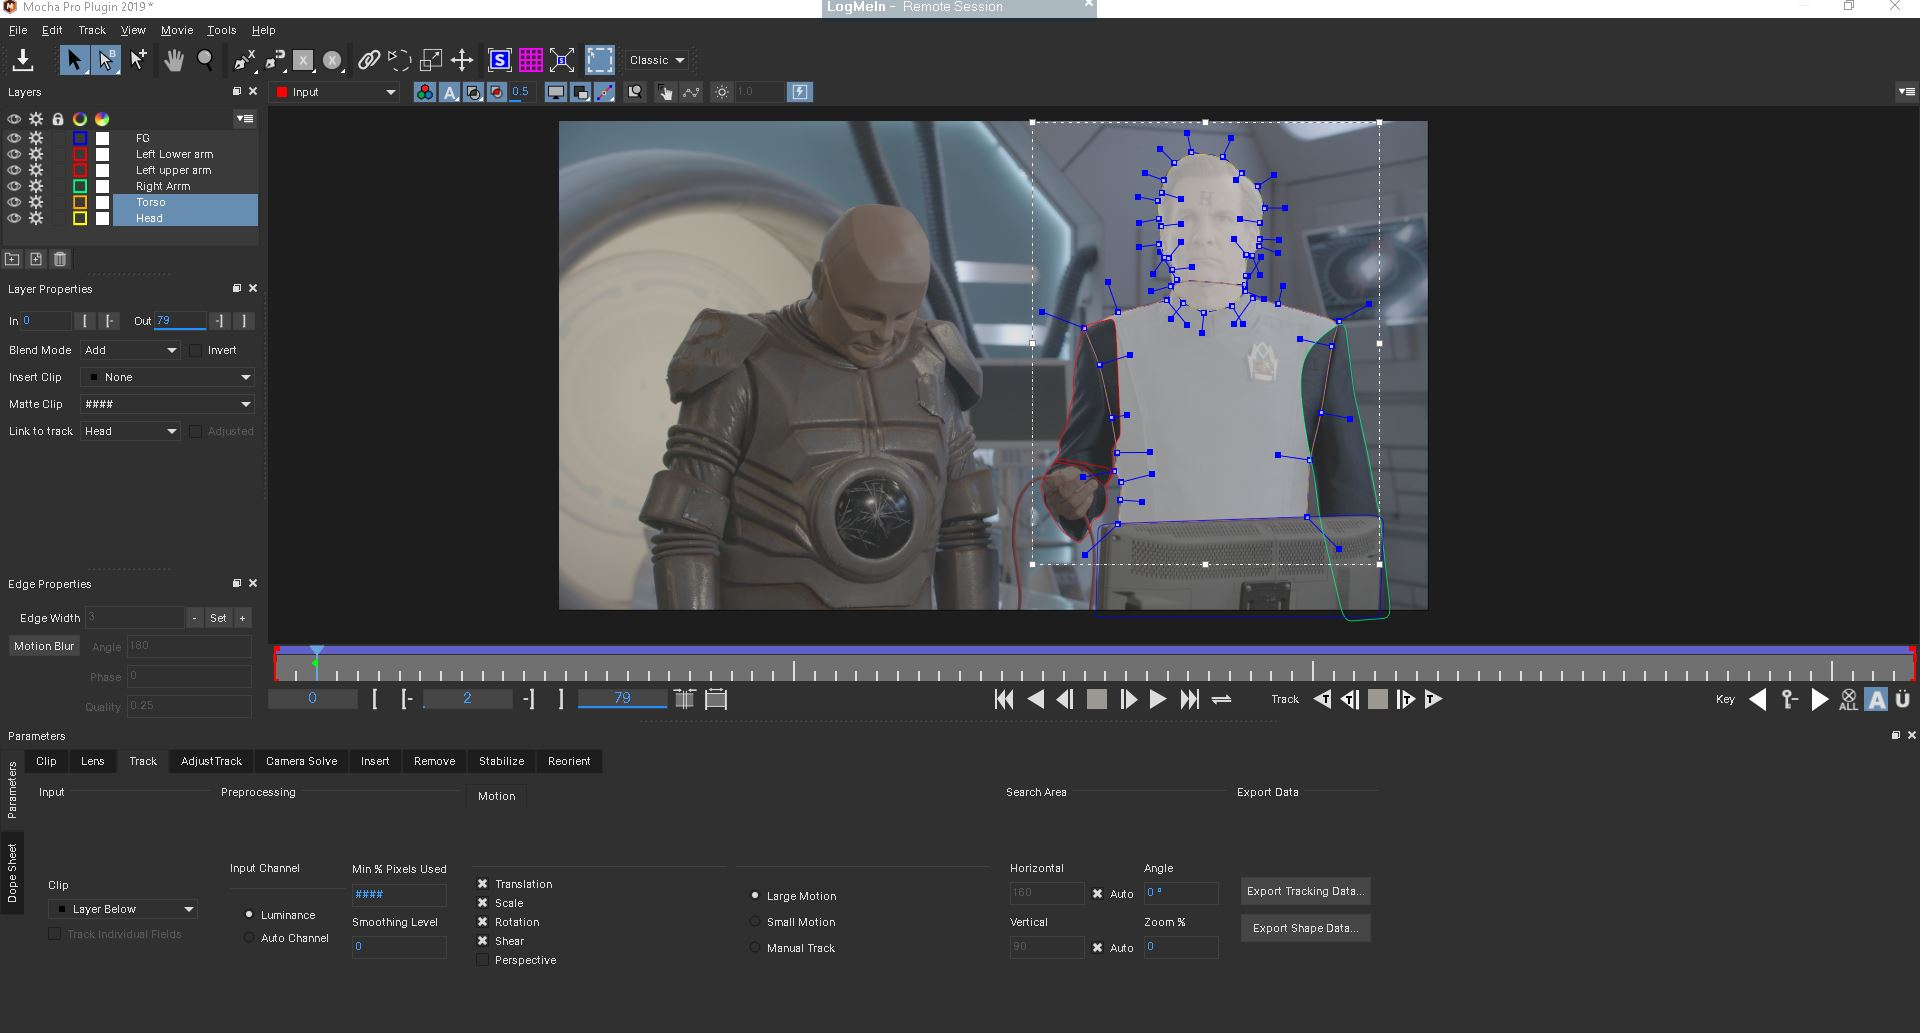 Rimmer tracked in Mocha Pro interface